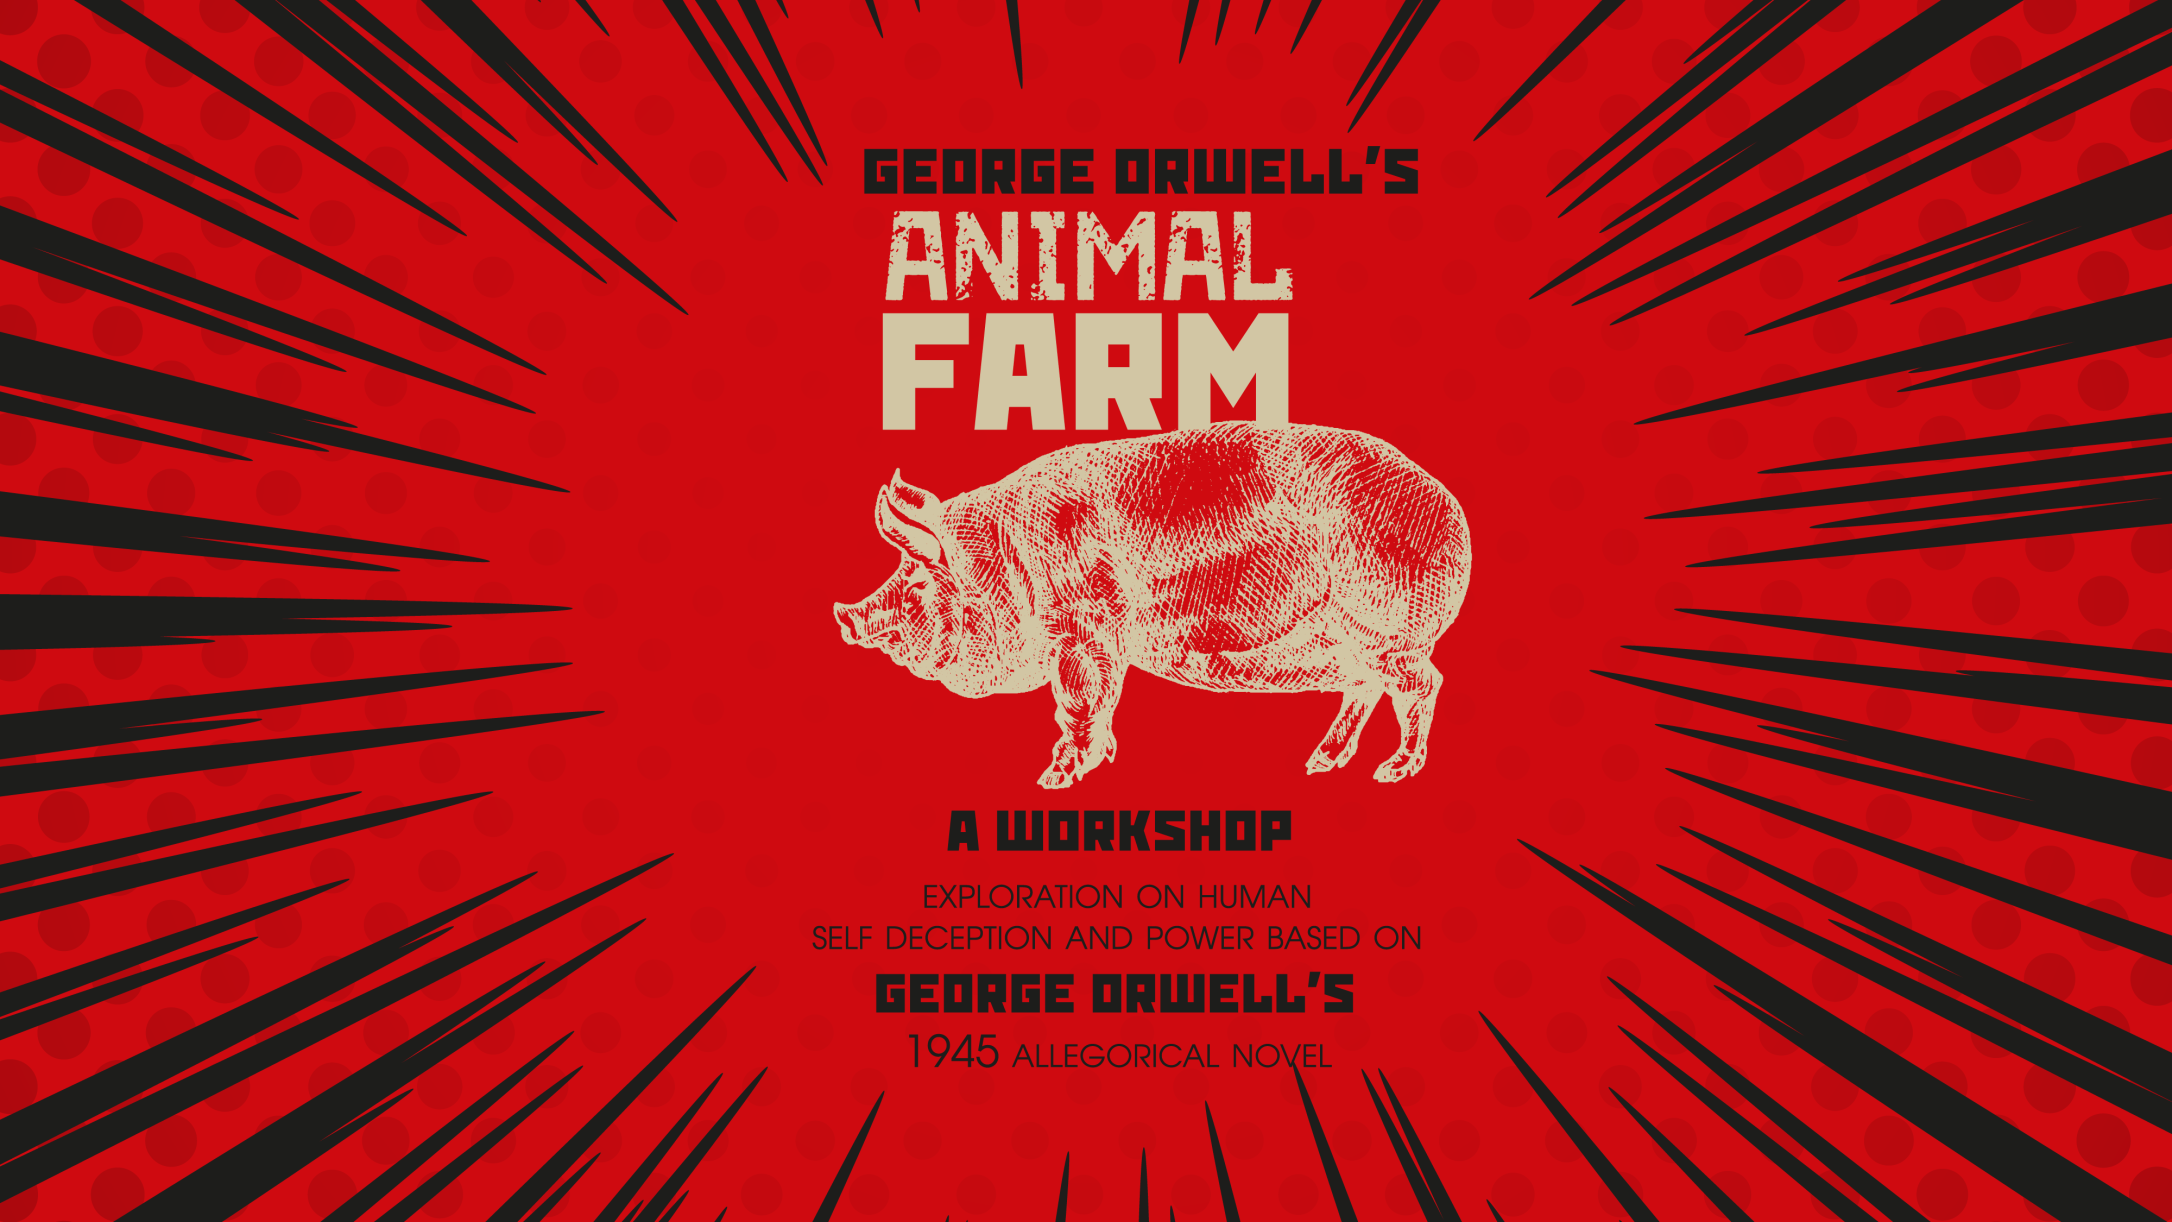 ANIMAL FARM - Developed by the Nostos Ensemble (@nostosensemble) in Stara Zagora, Bulgaria at the first stage of the International Creative Lab: Orwell Studio, funded through the Bulgarian-American Exchange Program, administered by the Art Office Foundation, and supported by Pace School of Performing Arts.Led by:Veselka Kuncheva (Director)Marieta Golomehova (Stage/Props Design)Hristo Namliev (Music)Featuring: Nolan Atterbury, Kyle Best, Sophia Carlin, Alex Church-Gonzales, Ryan Cook, Chloe Gluchanicz, Abby Gumpper, Madi Hall, Robert Hamlin, Jordan Hudec, Chance Riley Kester, Melissa Myers, Kelly Ng, Asha Printup, Jade Rodriguez, Tamar Rubin, Yoni Weiss